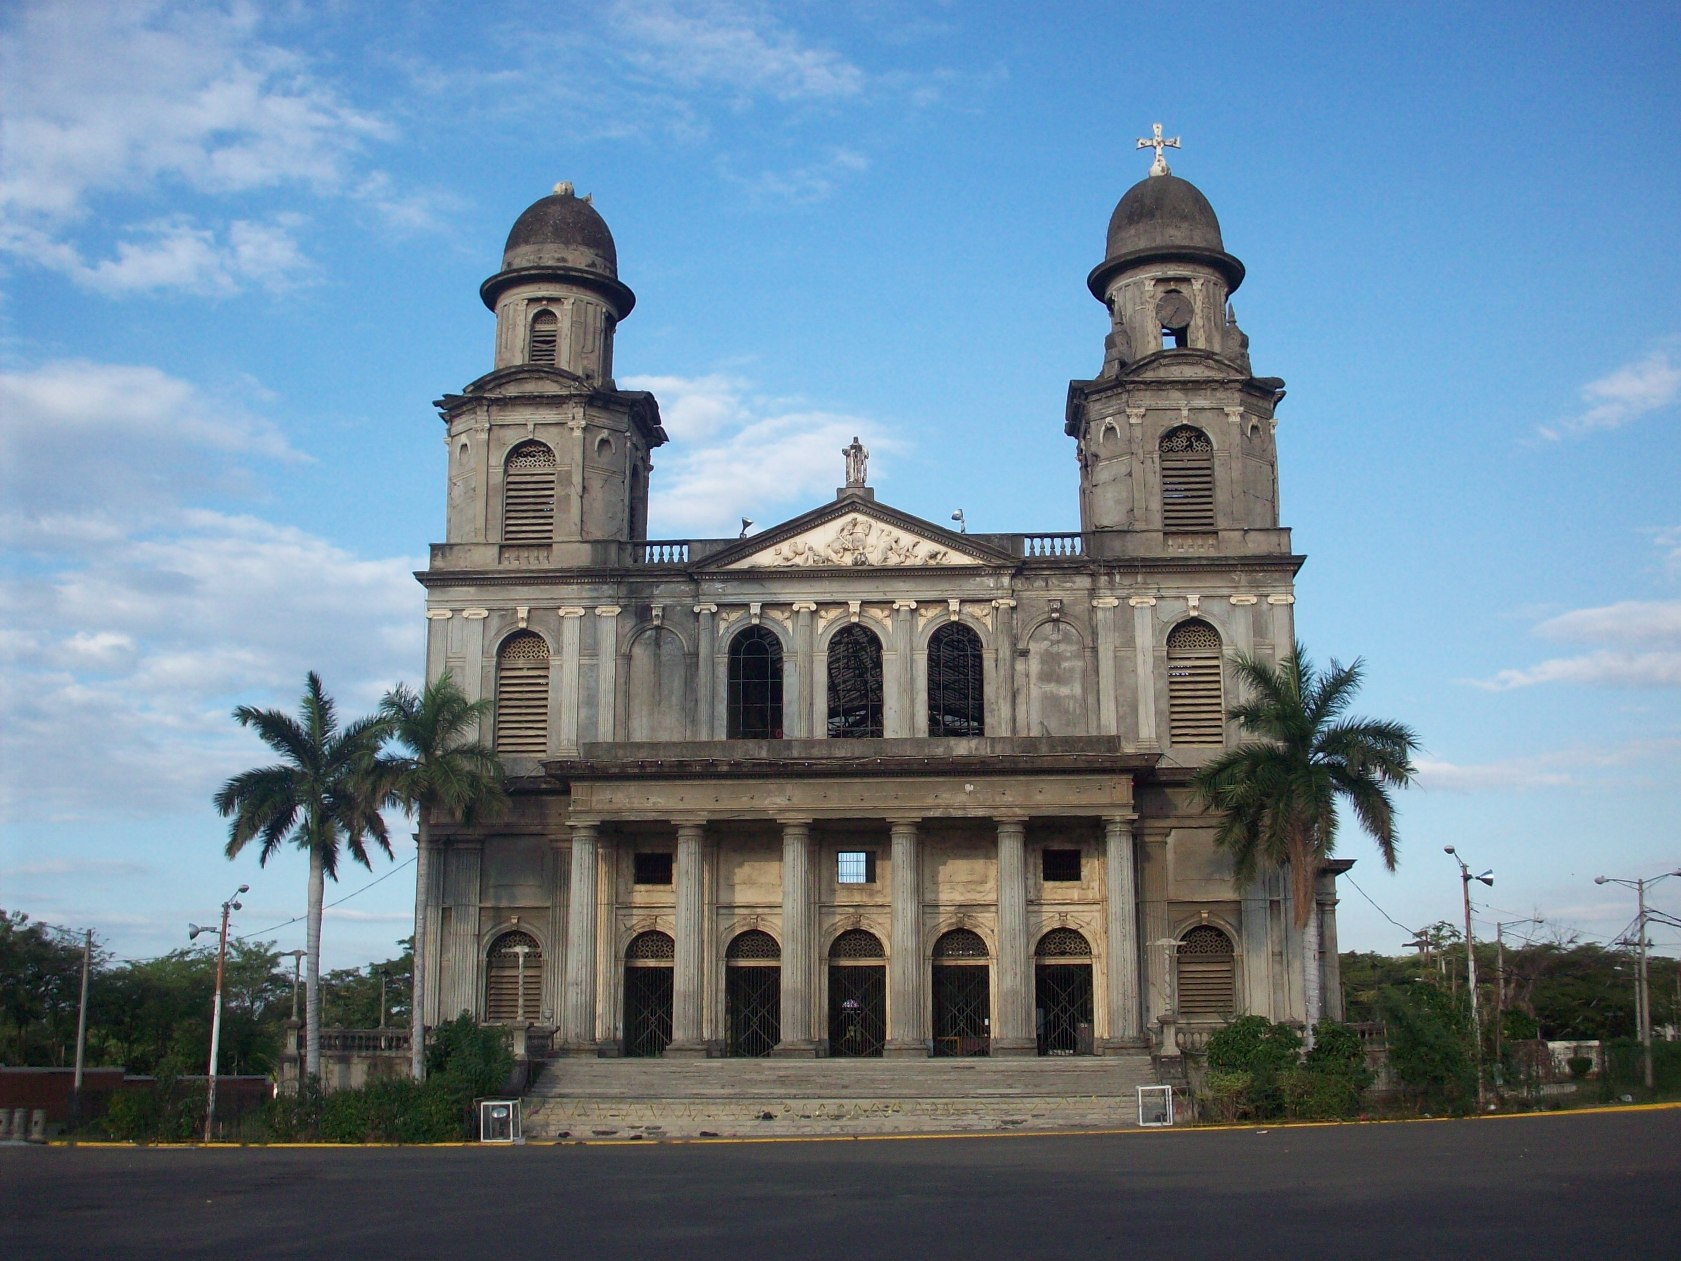 The old Cathedral of Managua